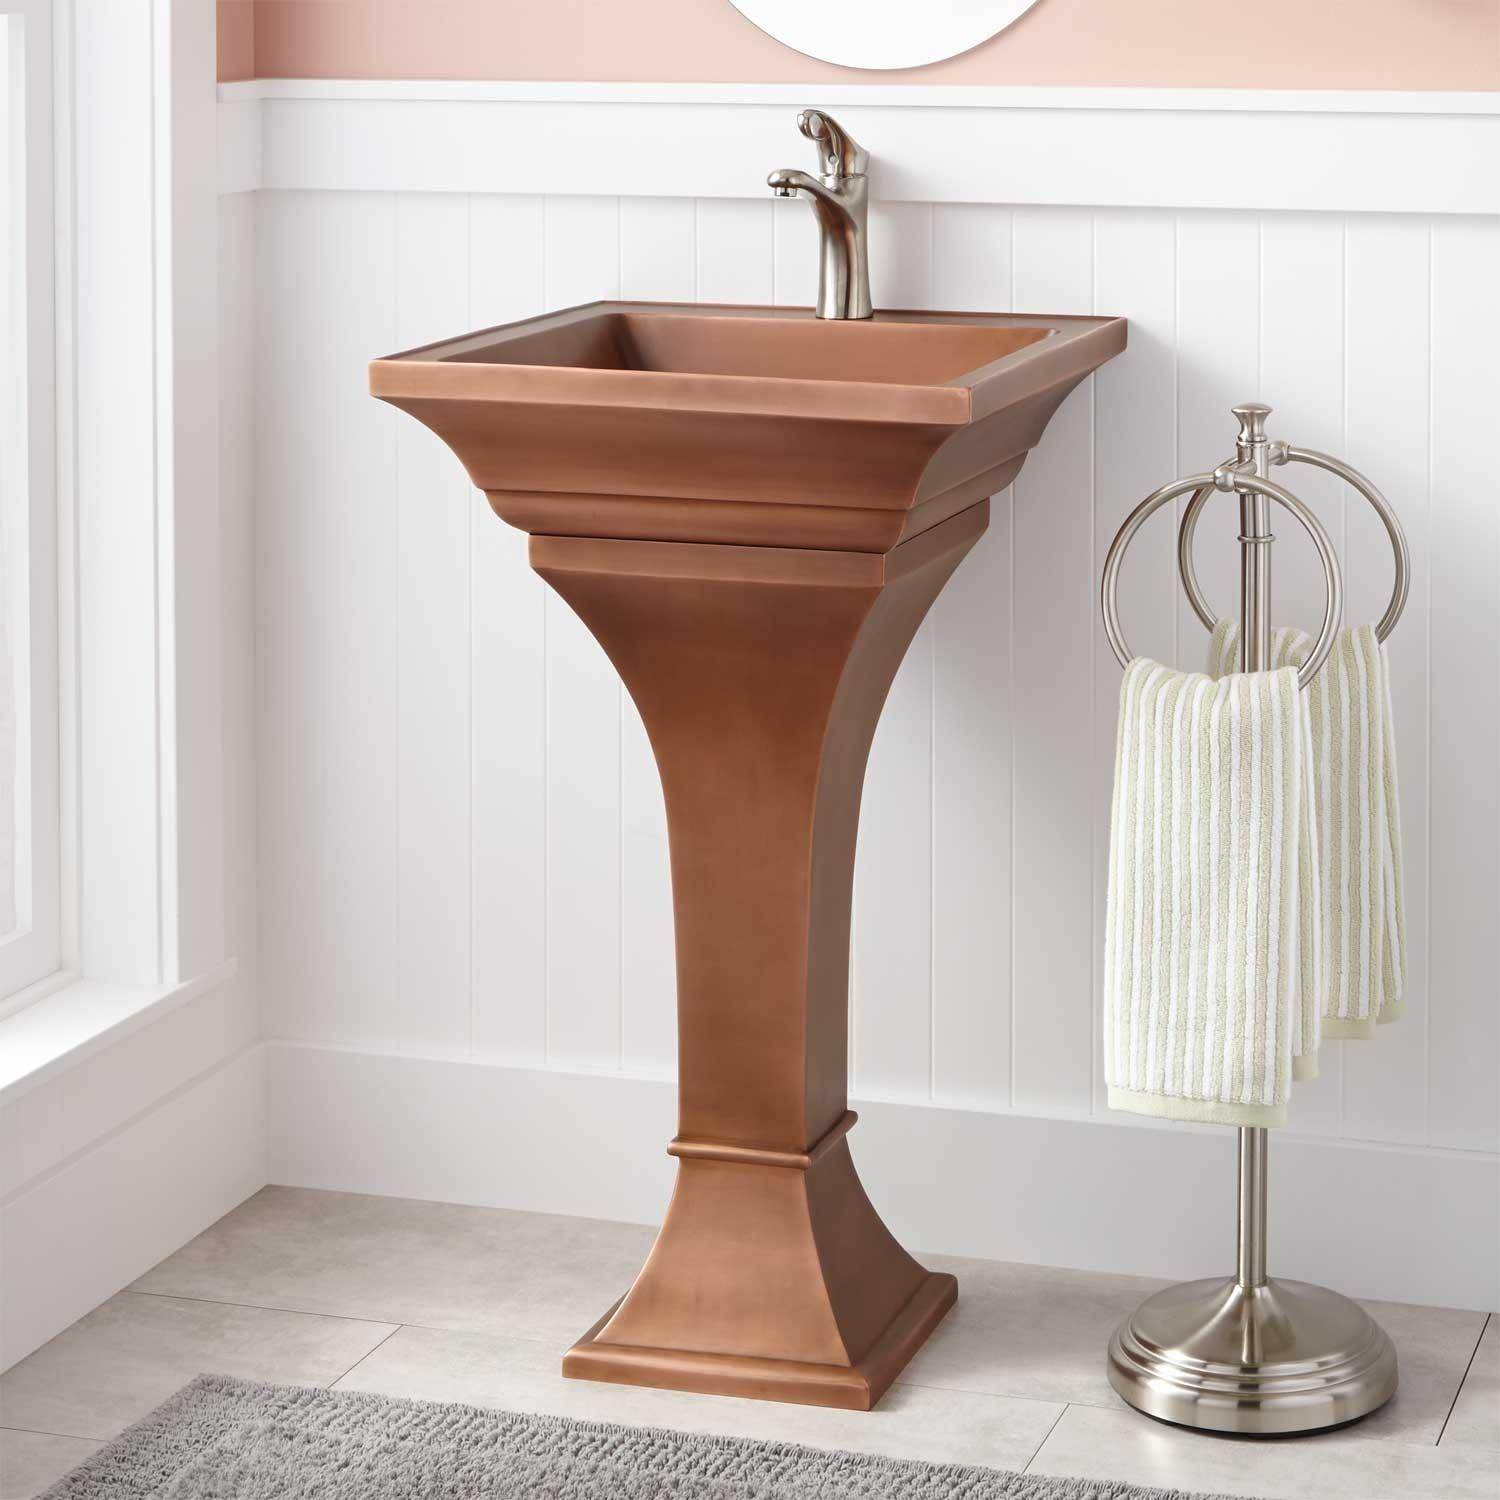 Square Smooth Copper Pedestal Sink Bathroom